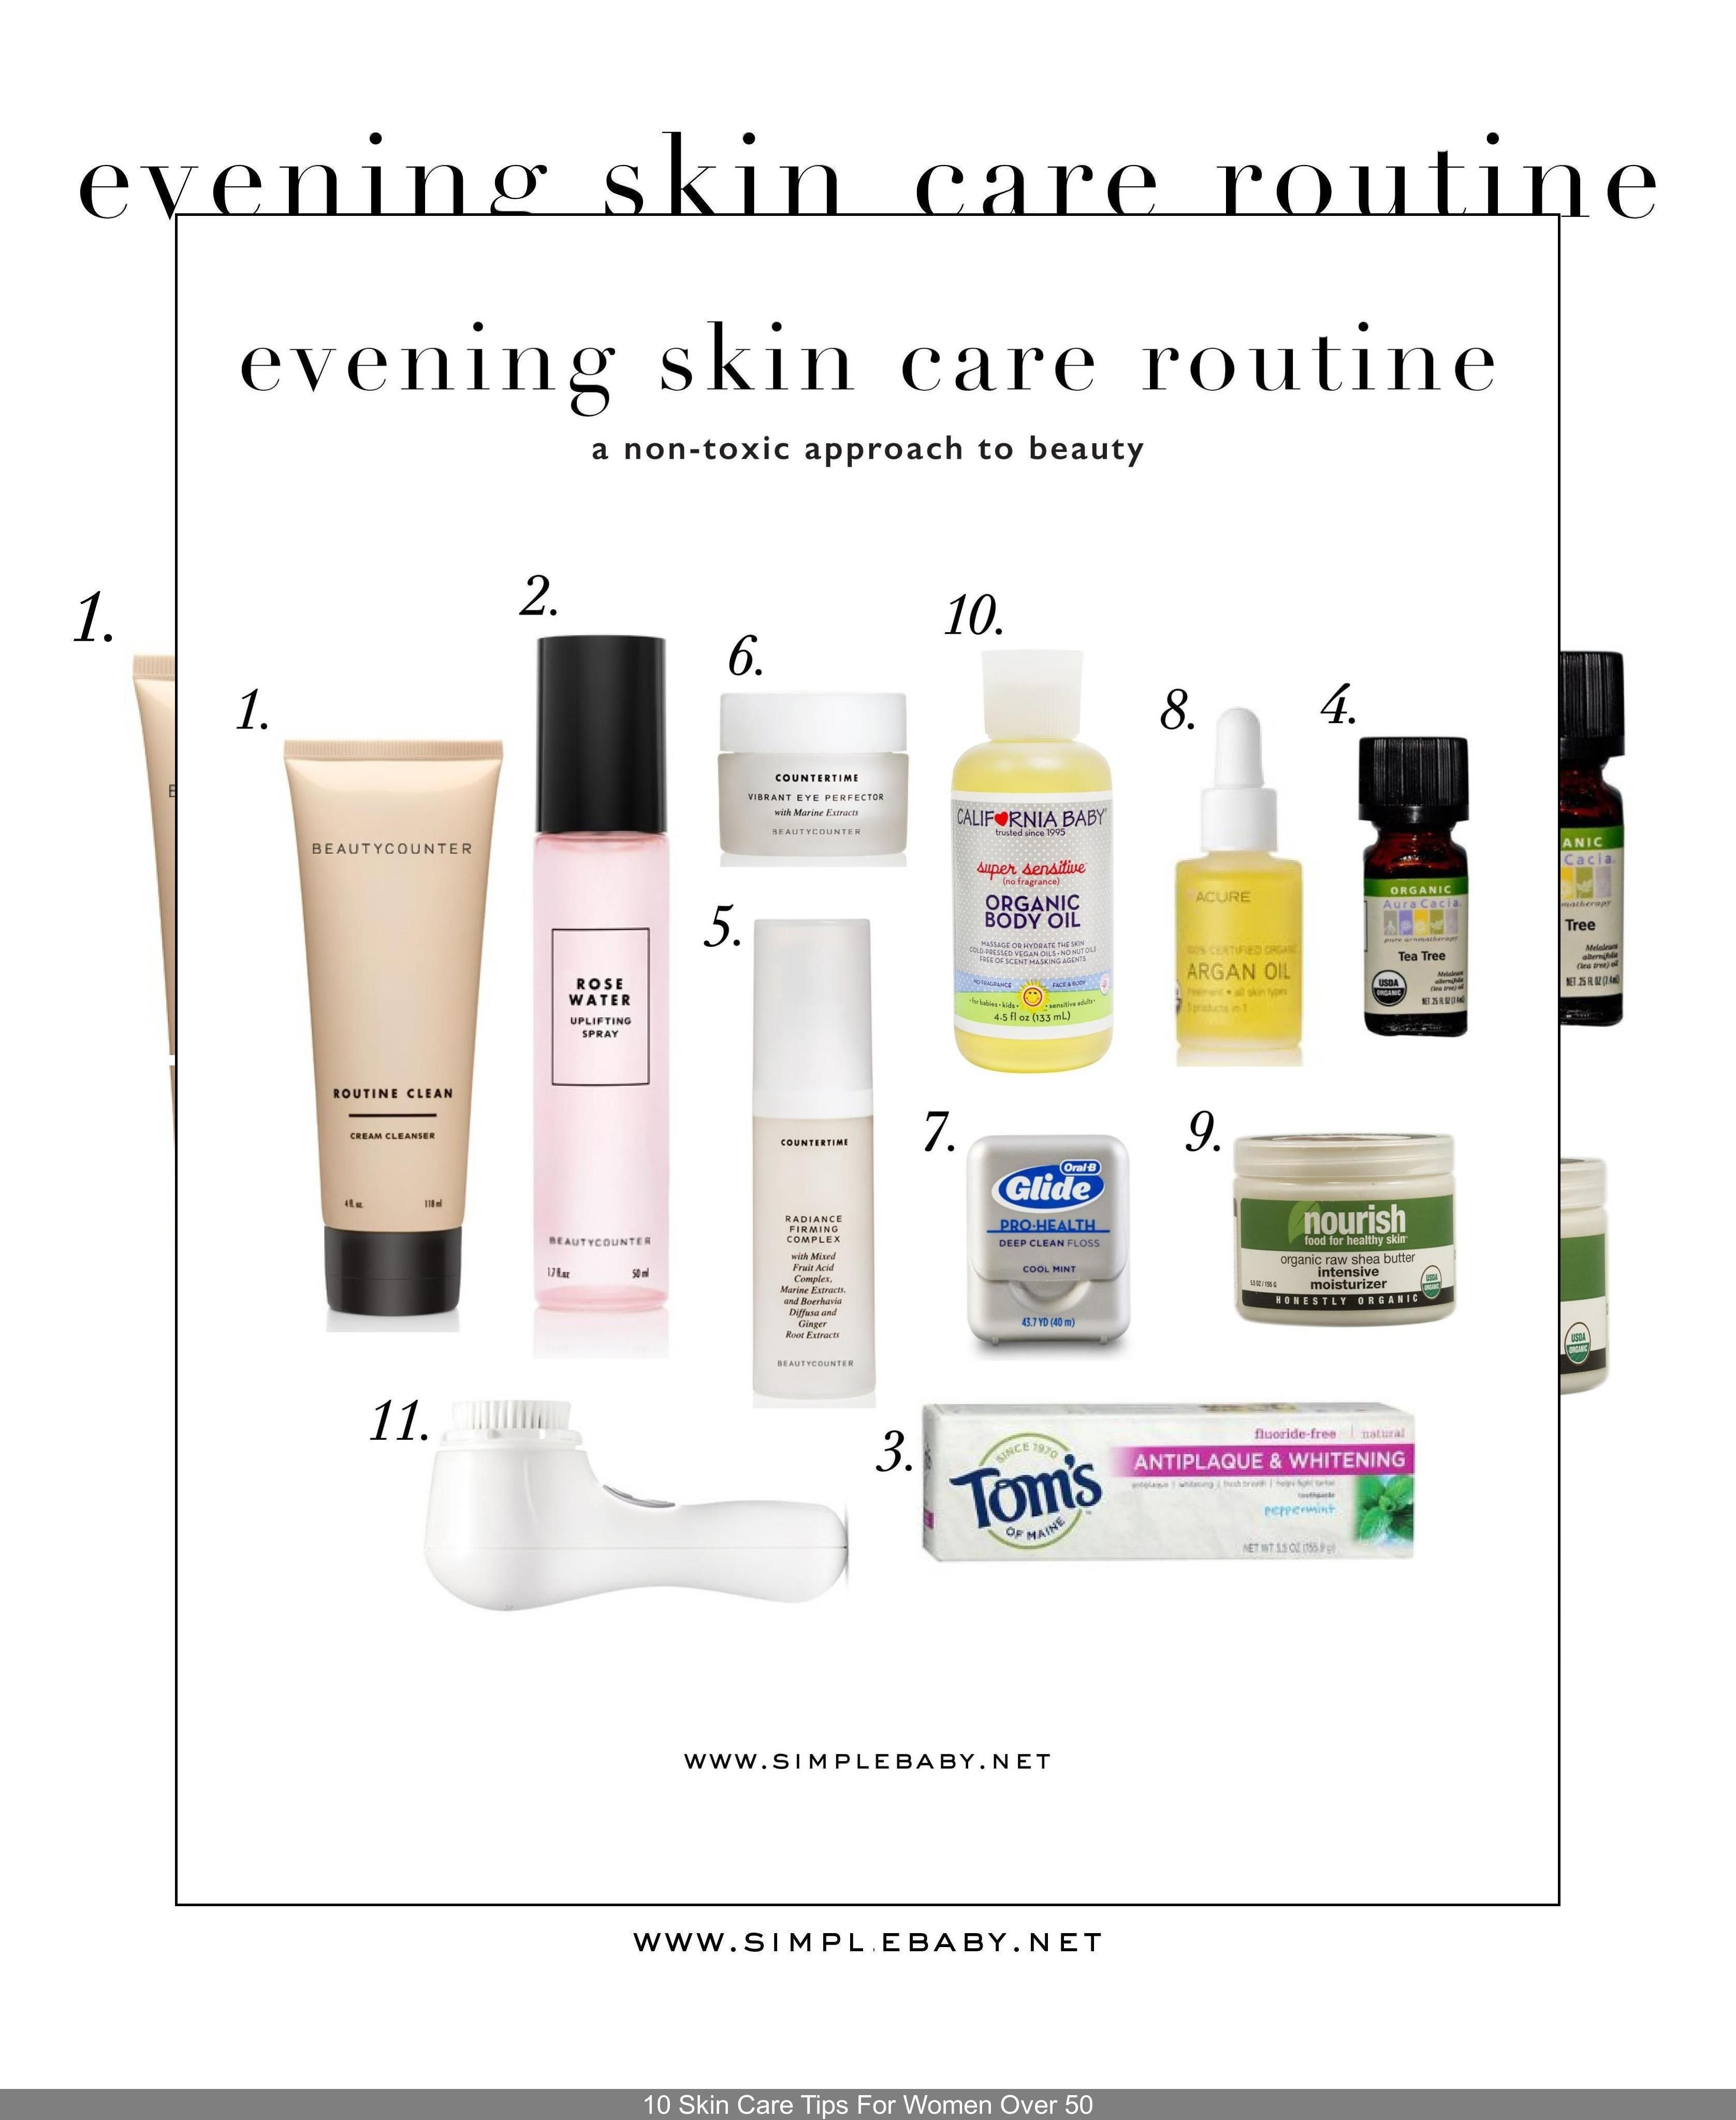 Best Skin Care Regimen For 50s Best Skin Care Products For Women In Their 30s Best Face Cream For Lat In 2020 Natural Skin Care Evening Skin Care Routine Skin Care